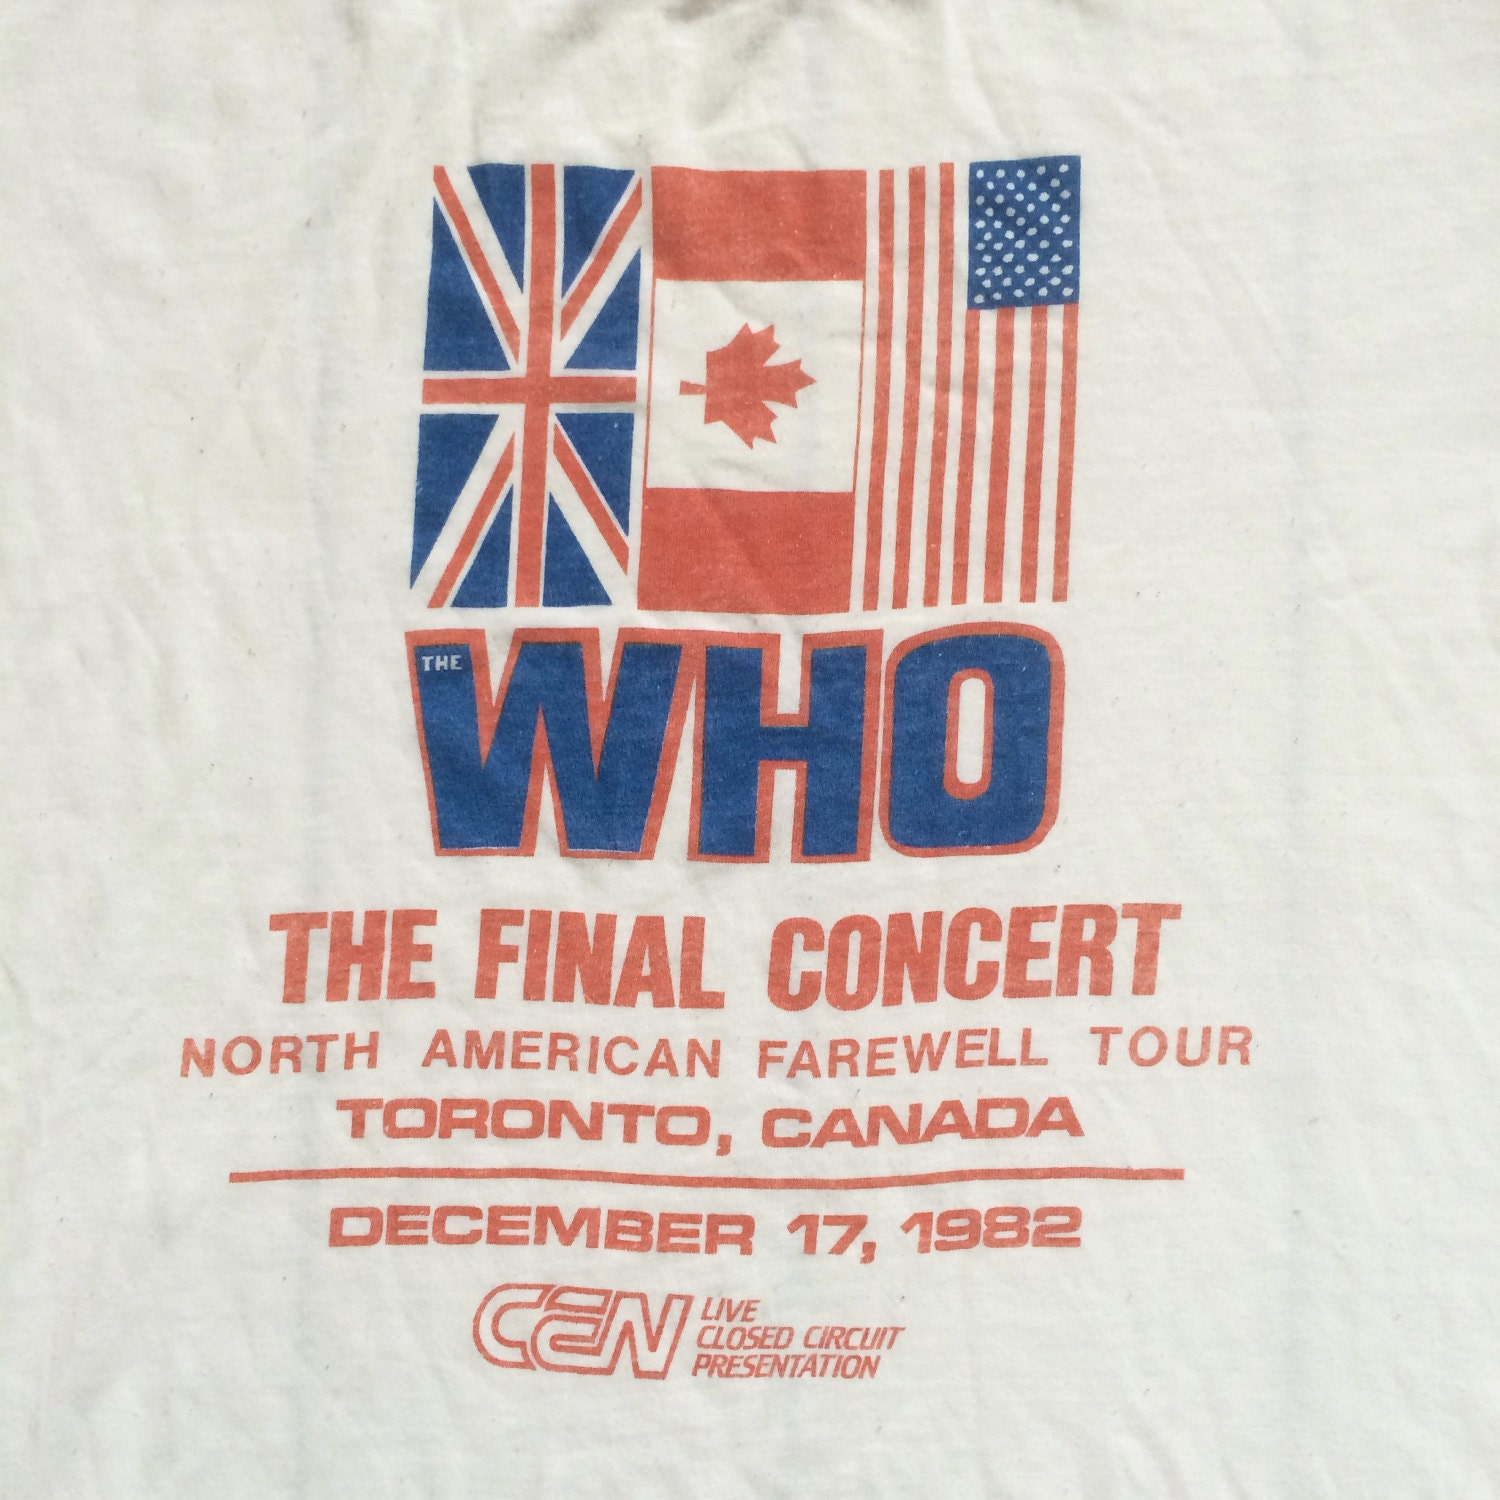 Original The Who 1982 North American Farewell tour Vintage t shirt